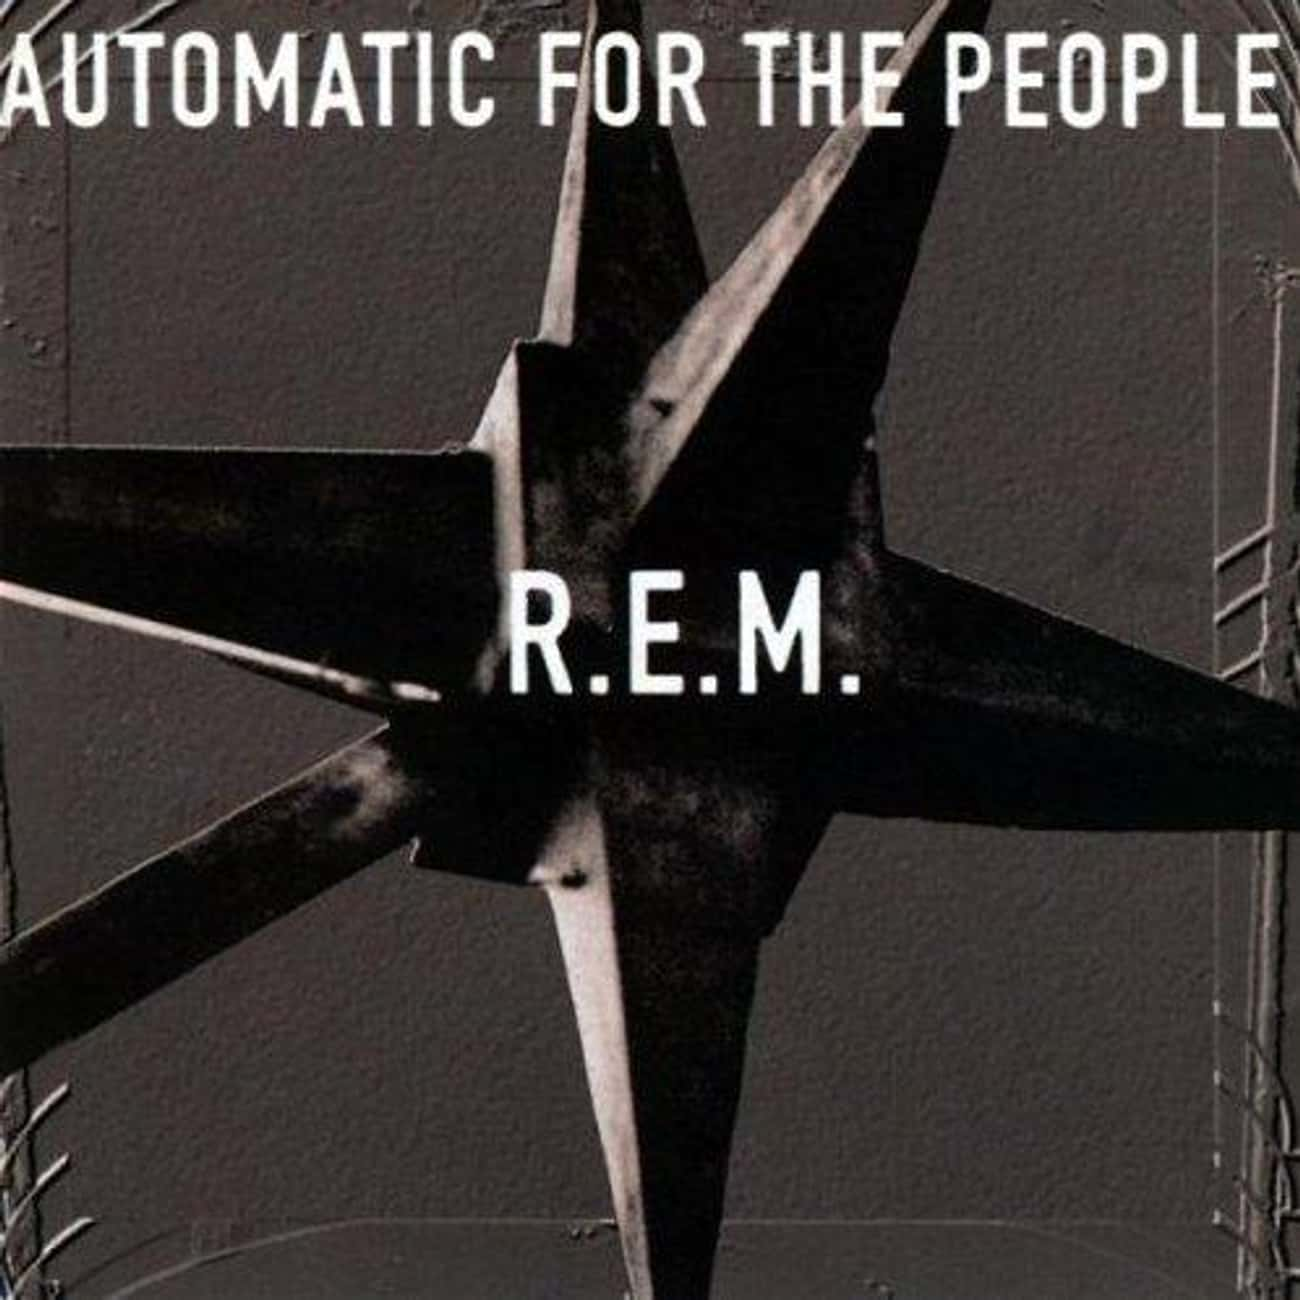 Automatic for the People is listed (or ranked) 1 on the list The Best R.E.M. Albums of All Time